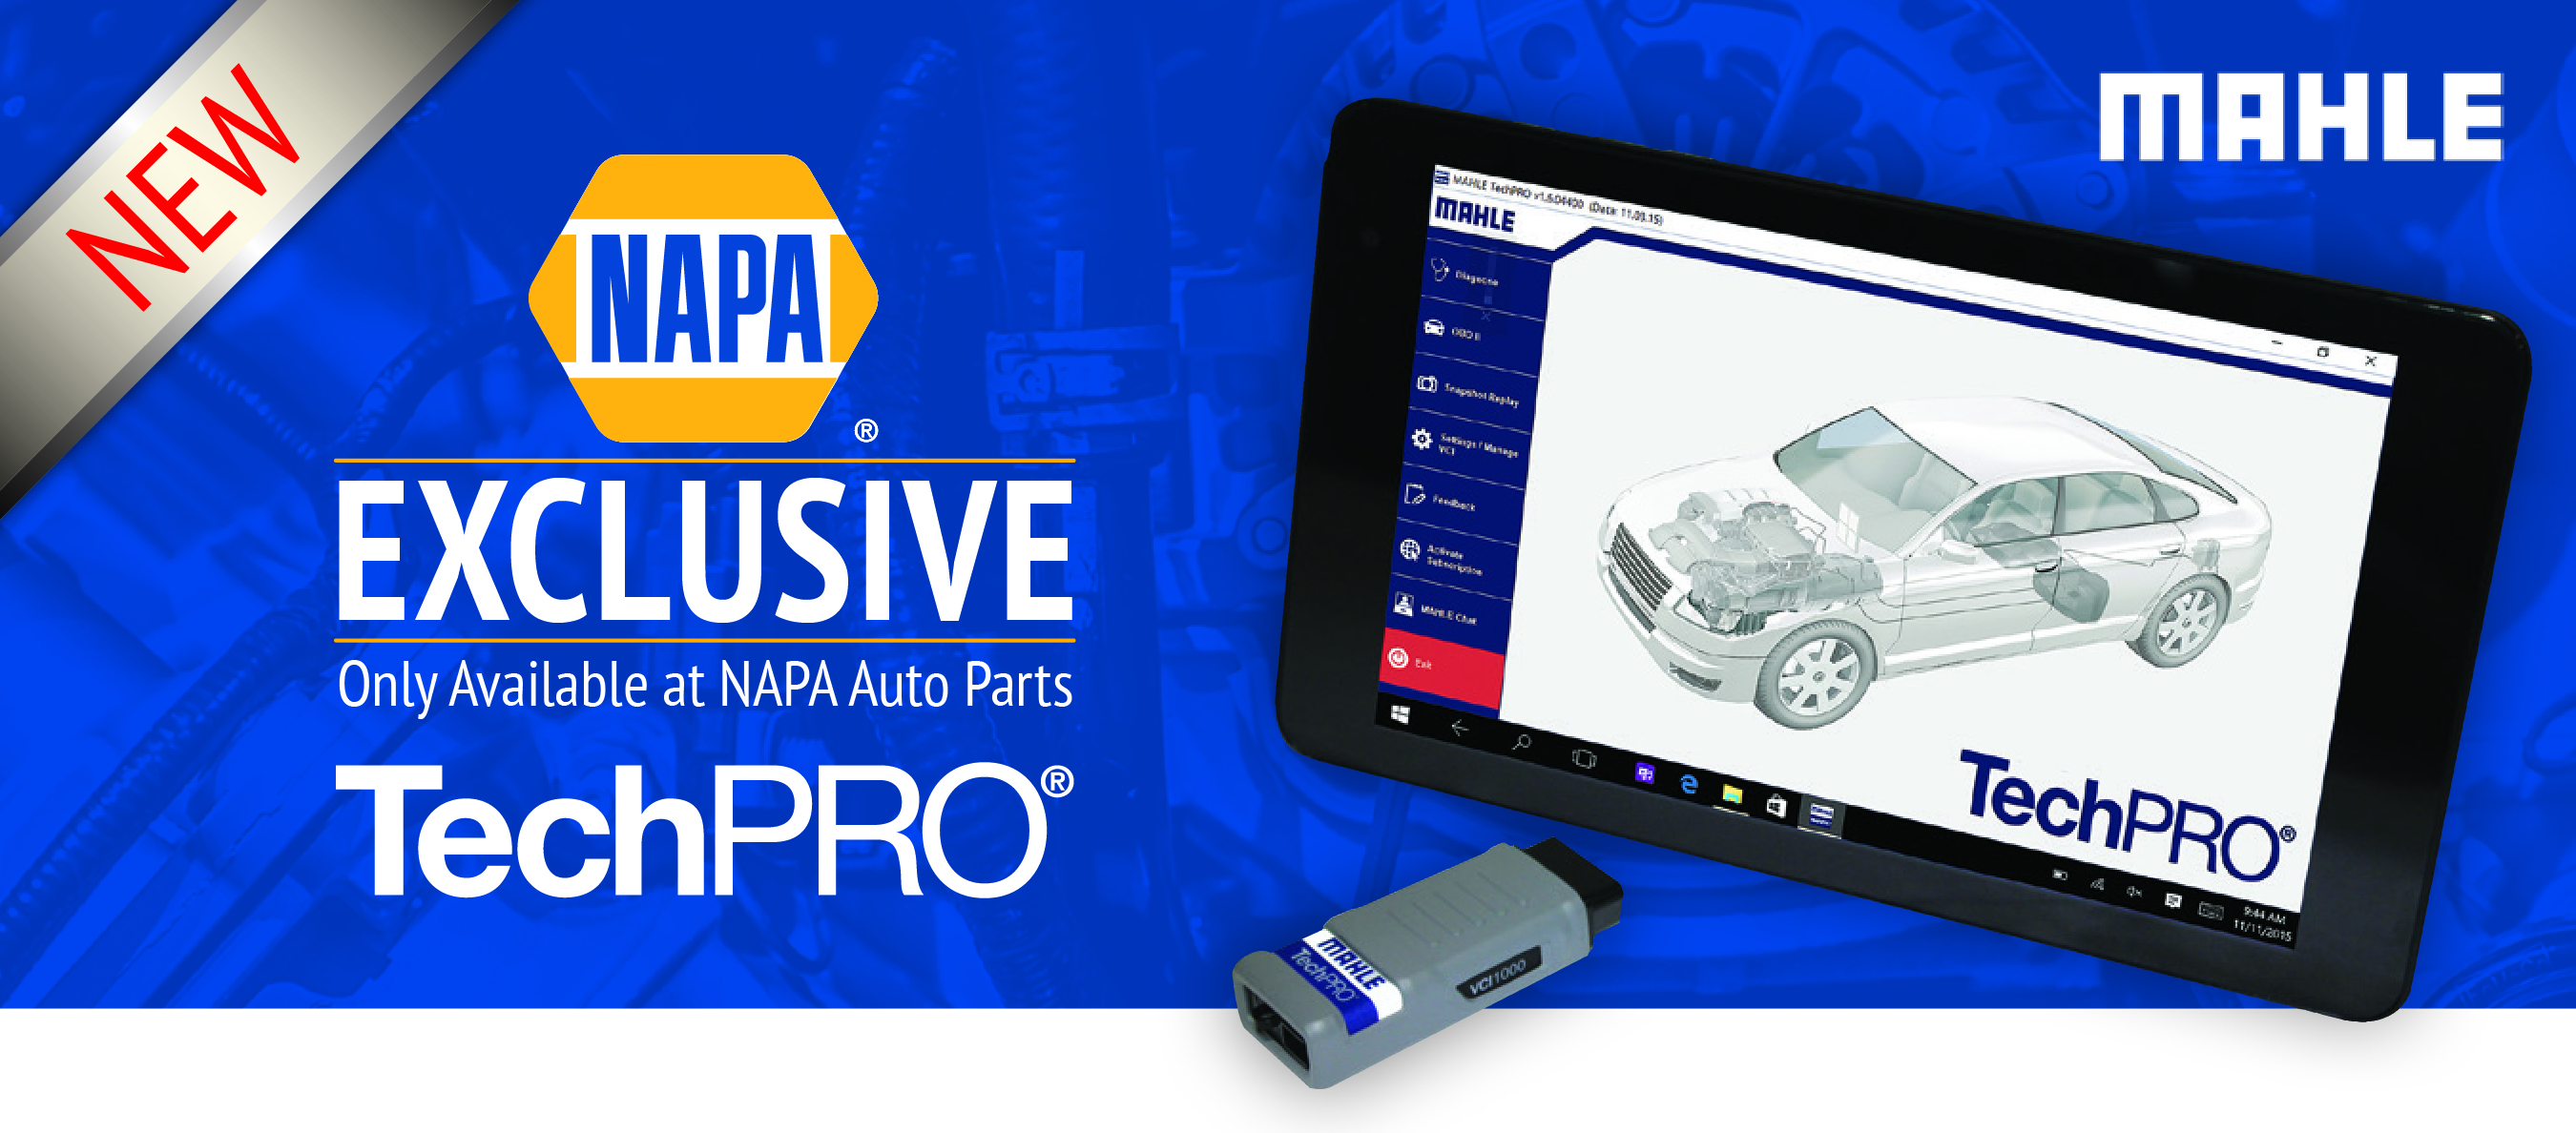 Mahle TechPRO Diagnostic Tool Available Exclusively Through NAPA